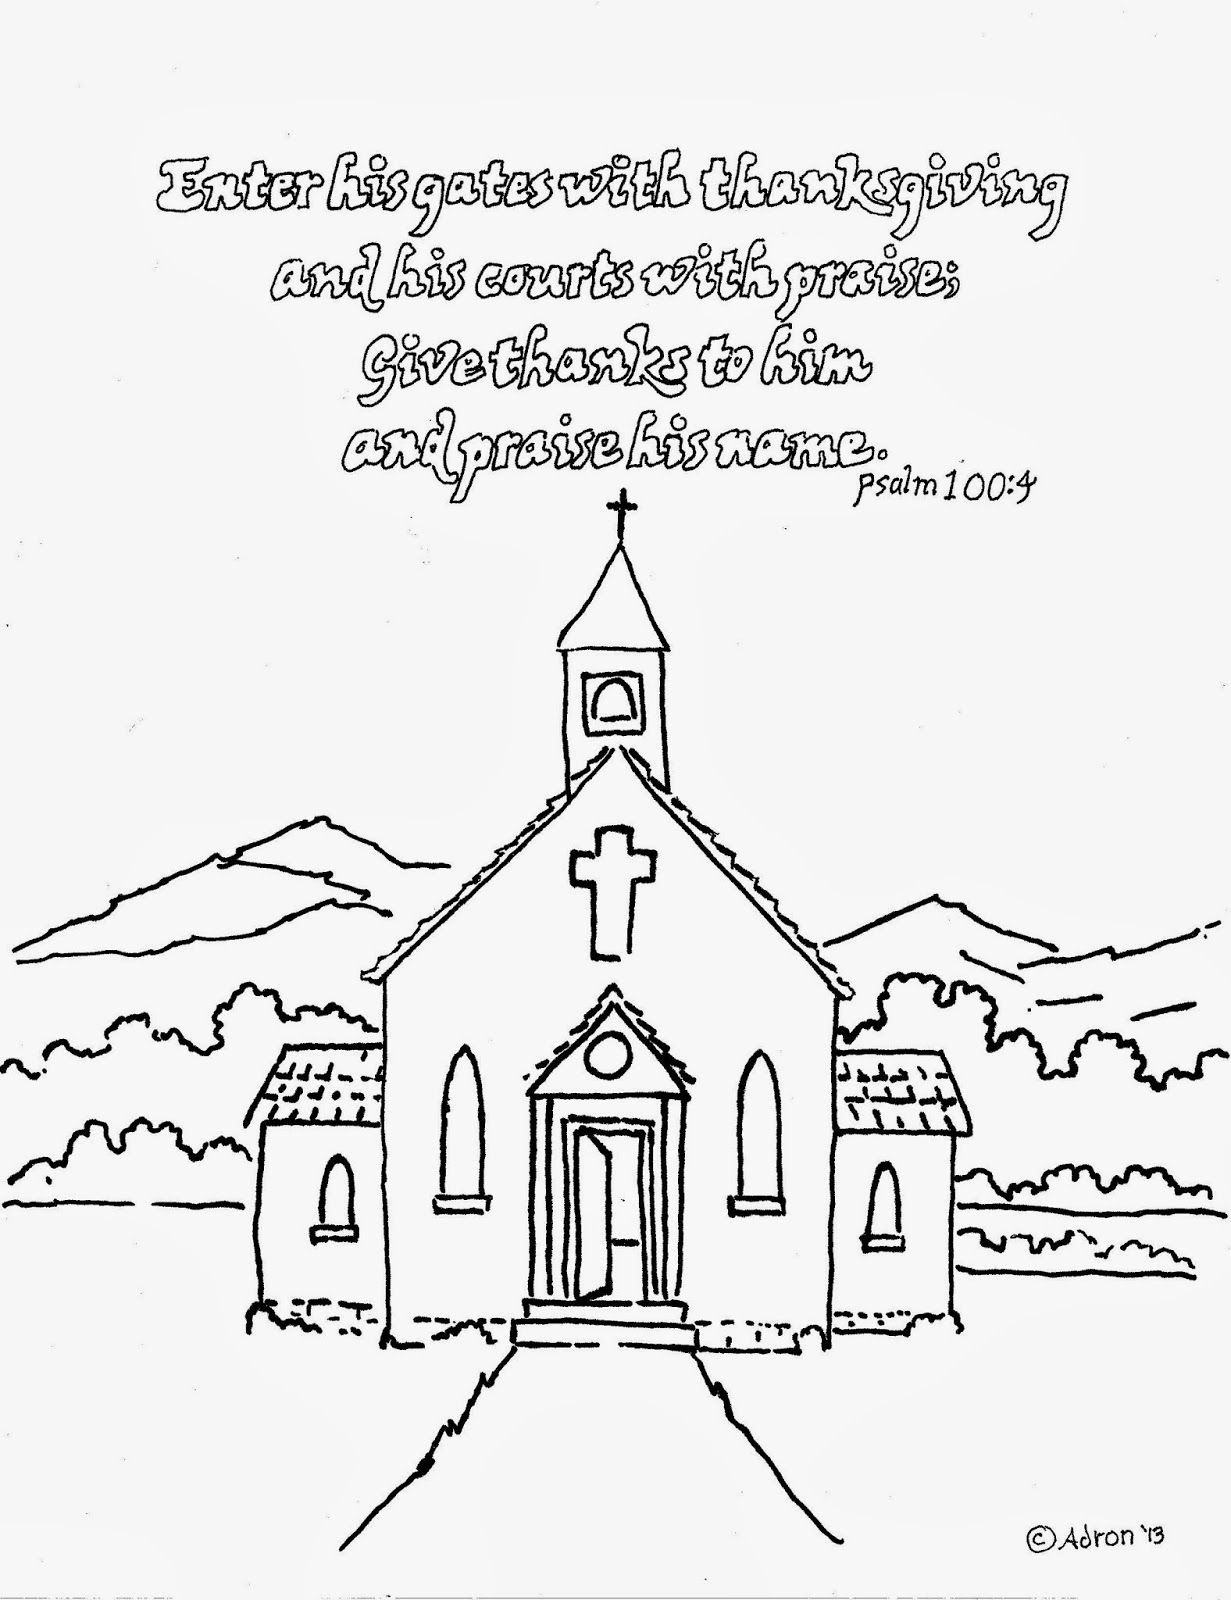 psalms coloring page for kids - Bing Images | Kids - Psalms ...